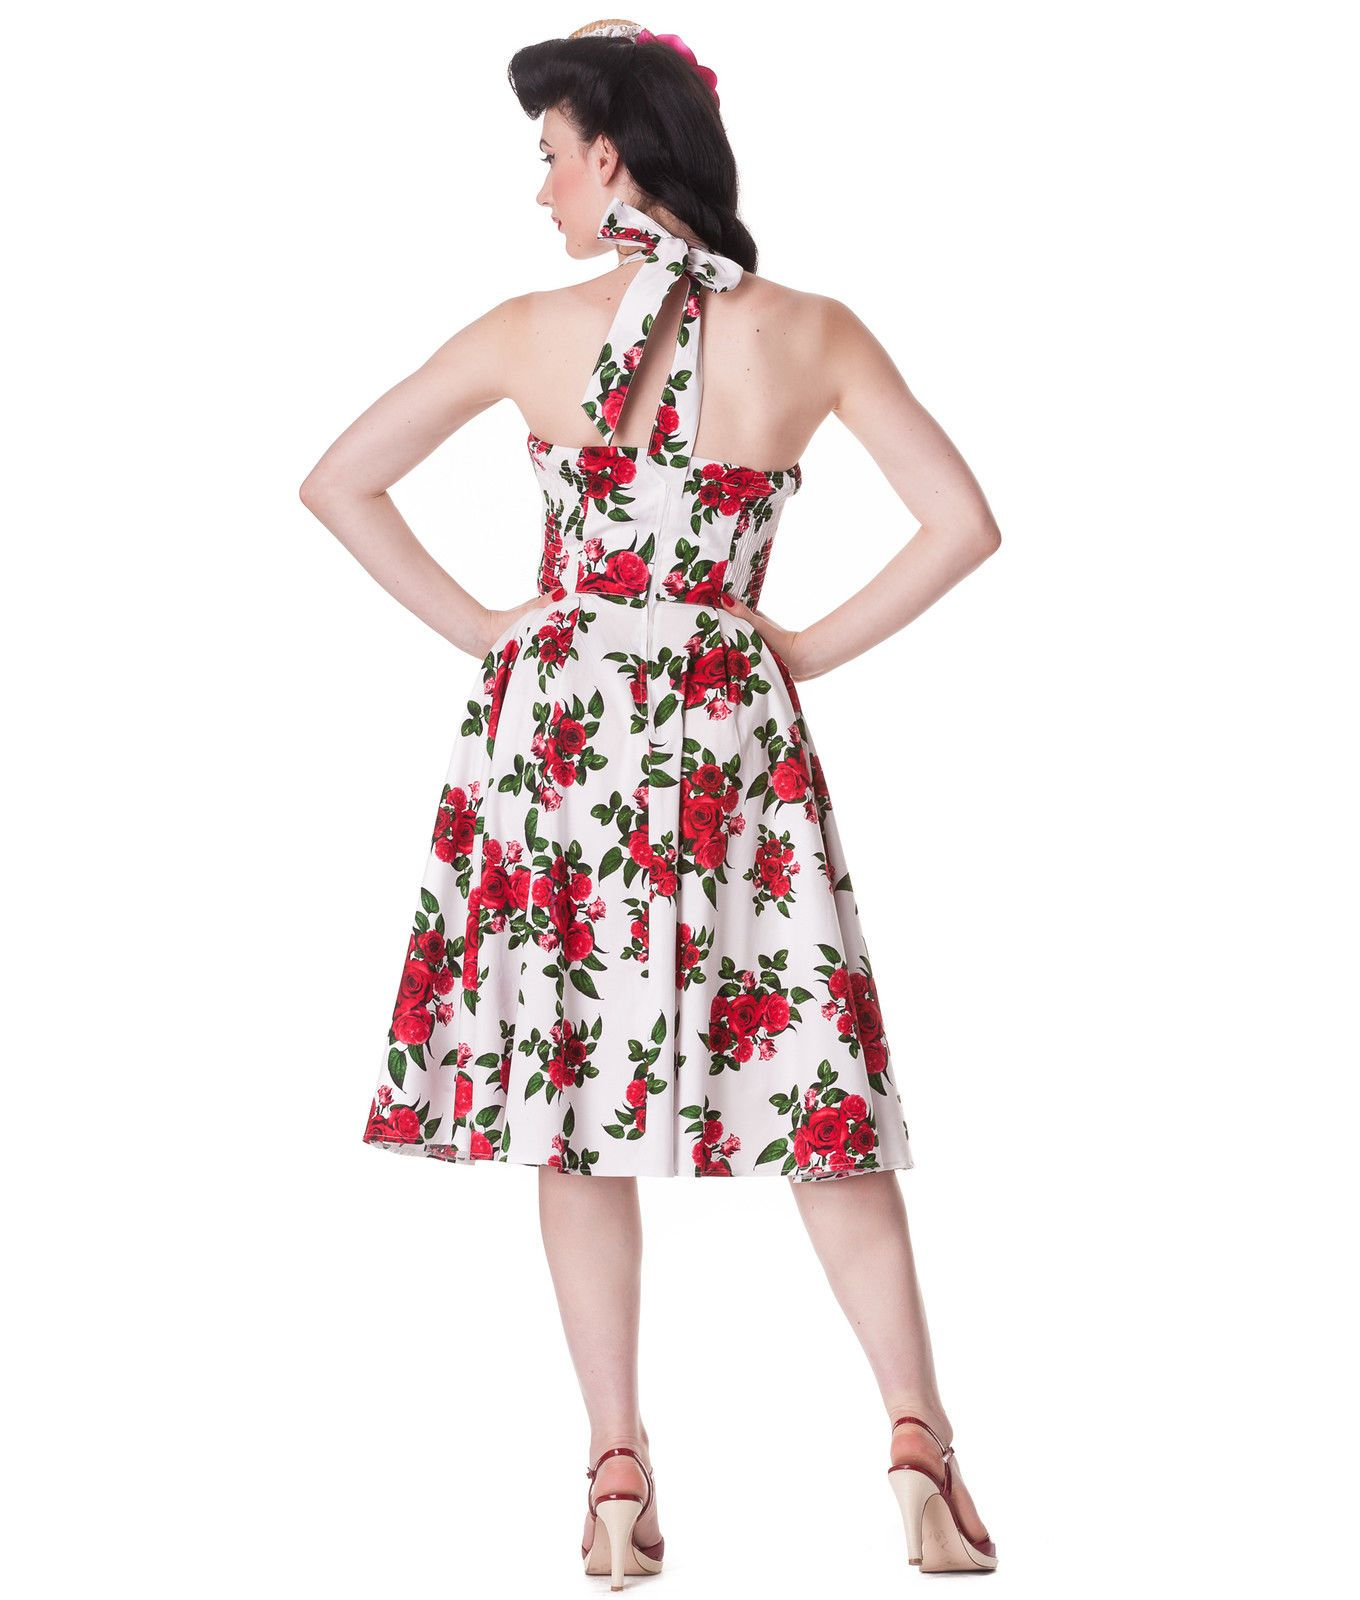 6f0db5c6e862 HELL BUNNY 50's CANNES vintage ROSE floral prom DRESS WHITE | eBay ...